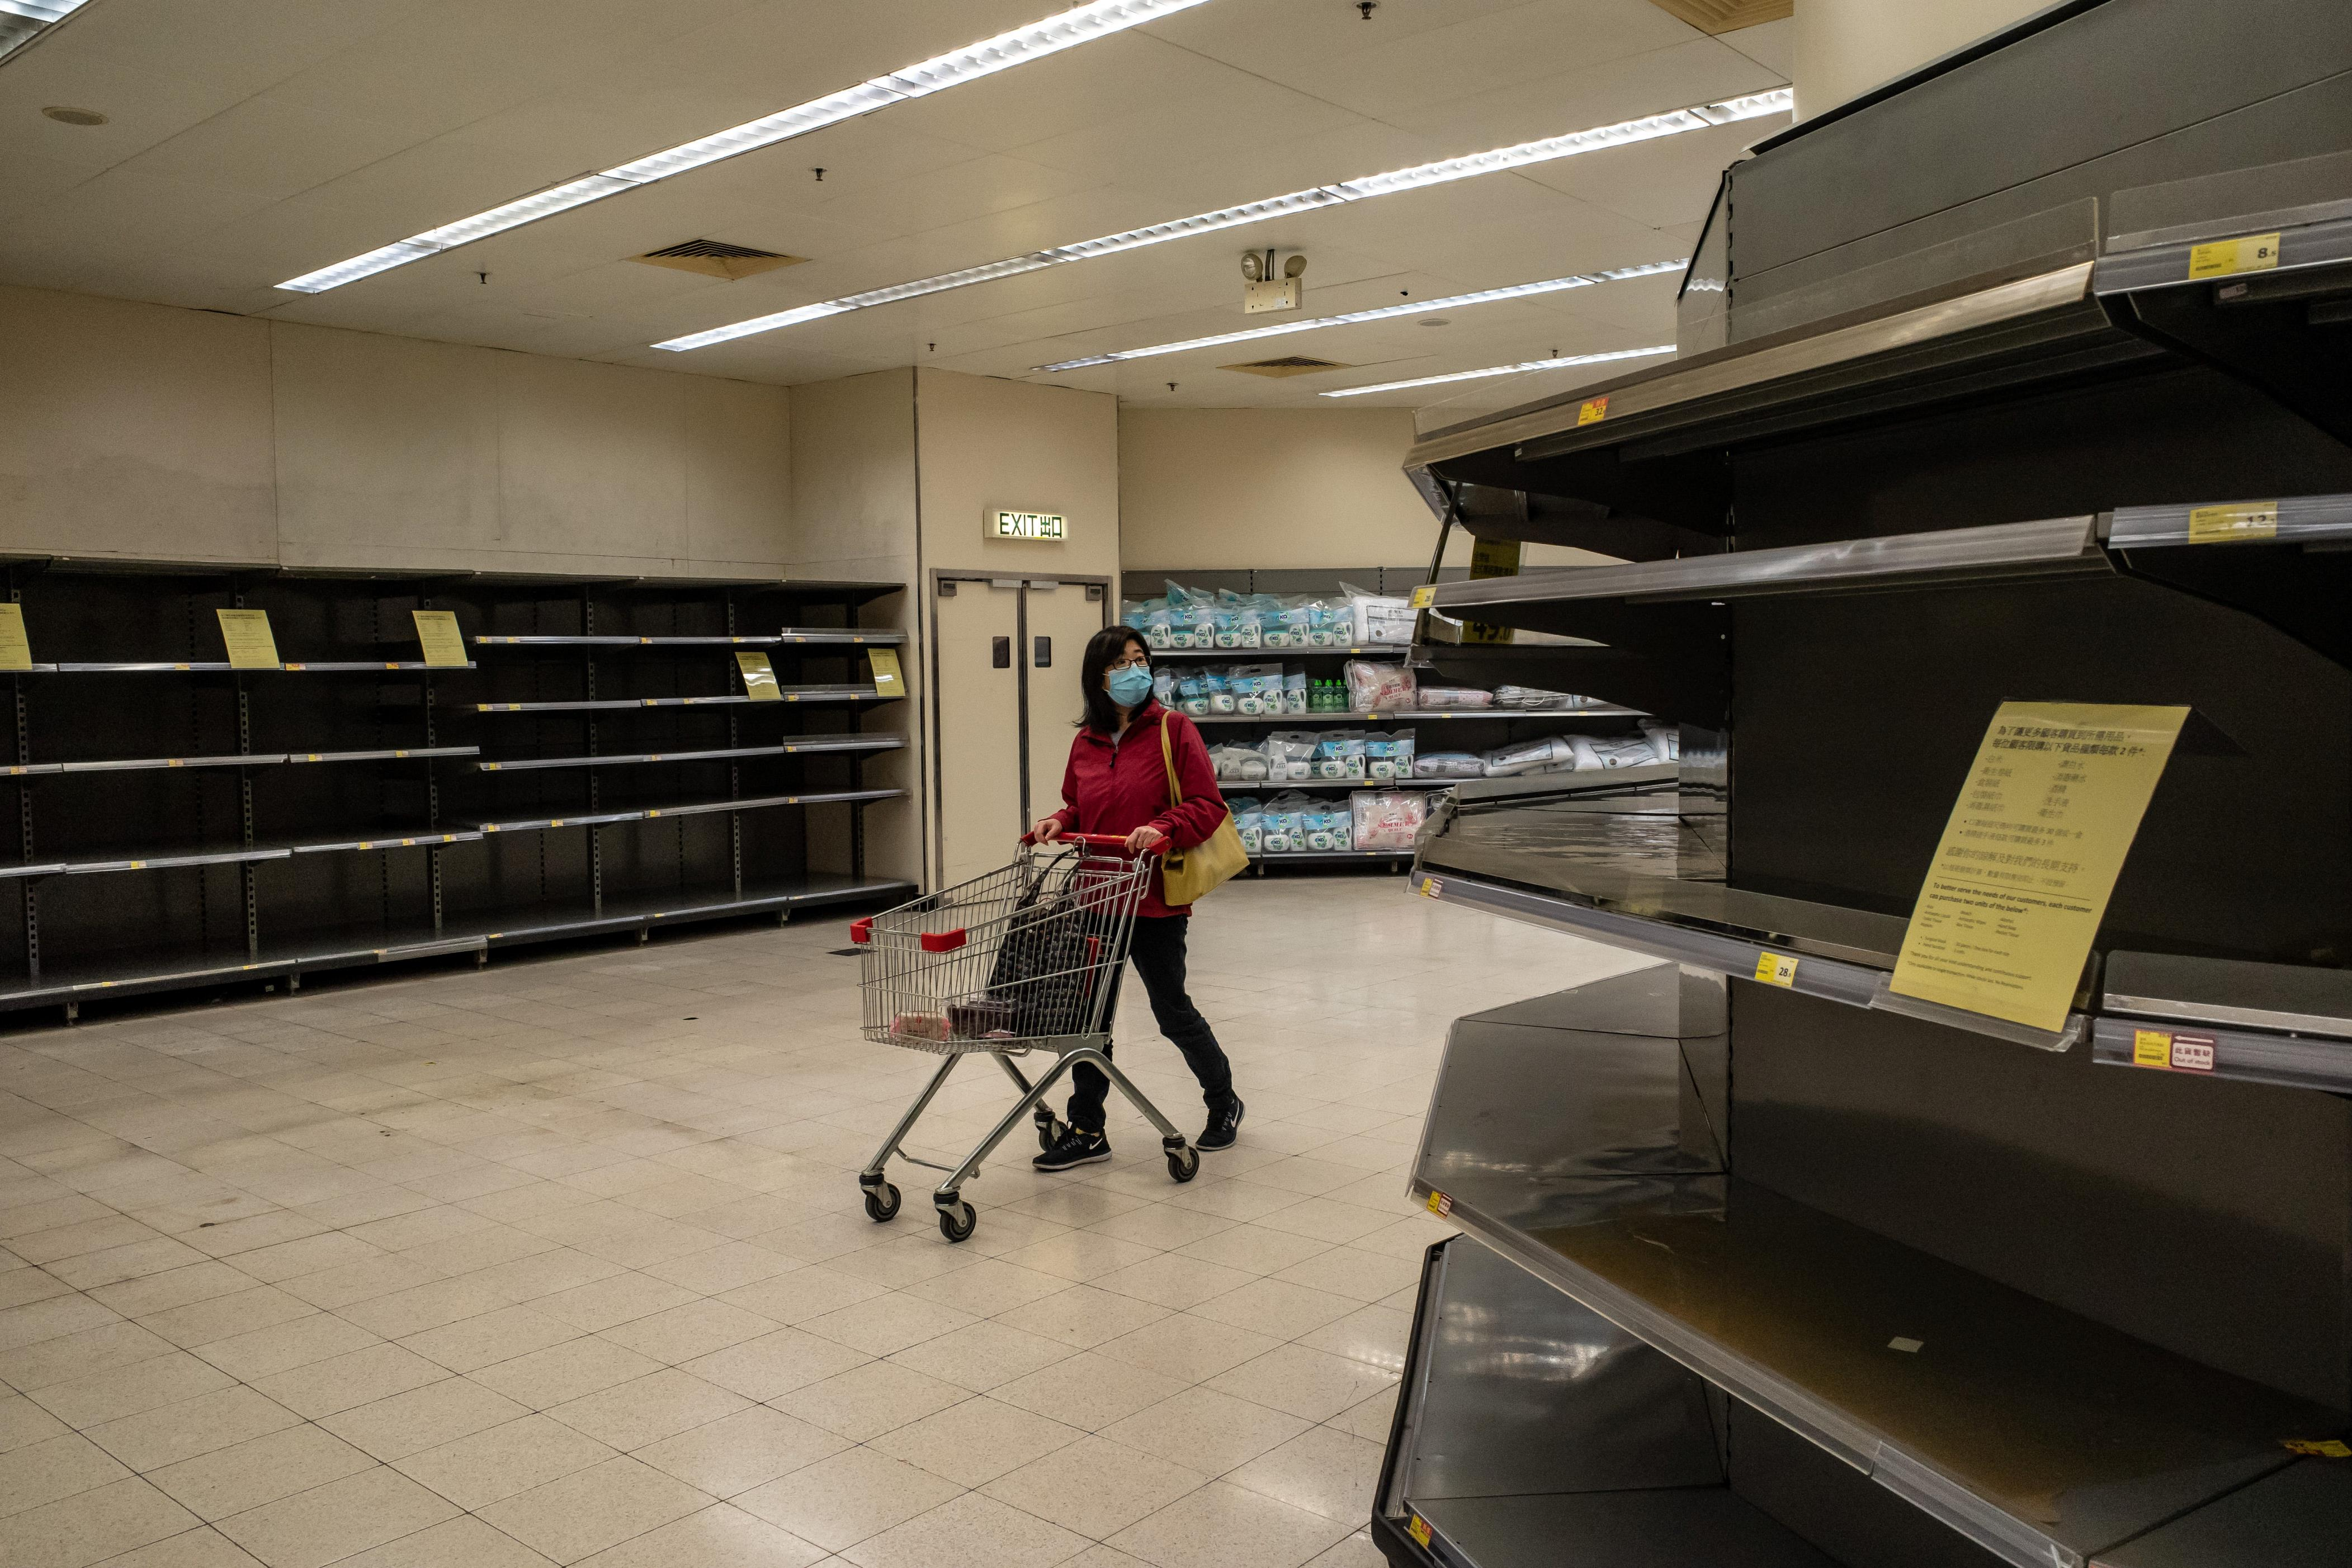 Slide 104 of 113: A shopper wearing face mask pushes a shopping cart in front of an empty shelves inside a grocery store on Feb. 9, 2020 in Hong Kong, China. Hong Kong has 29 confirmed cases of Novel coronavirus (2019-nCoV), with over 37,500 confirmed cases around the world, the virus has so far claimed over 800 lives.